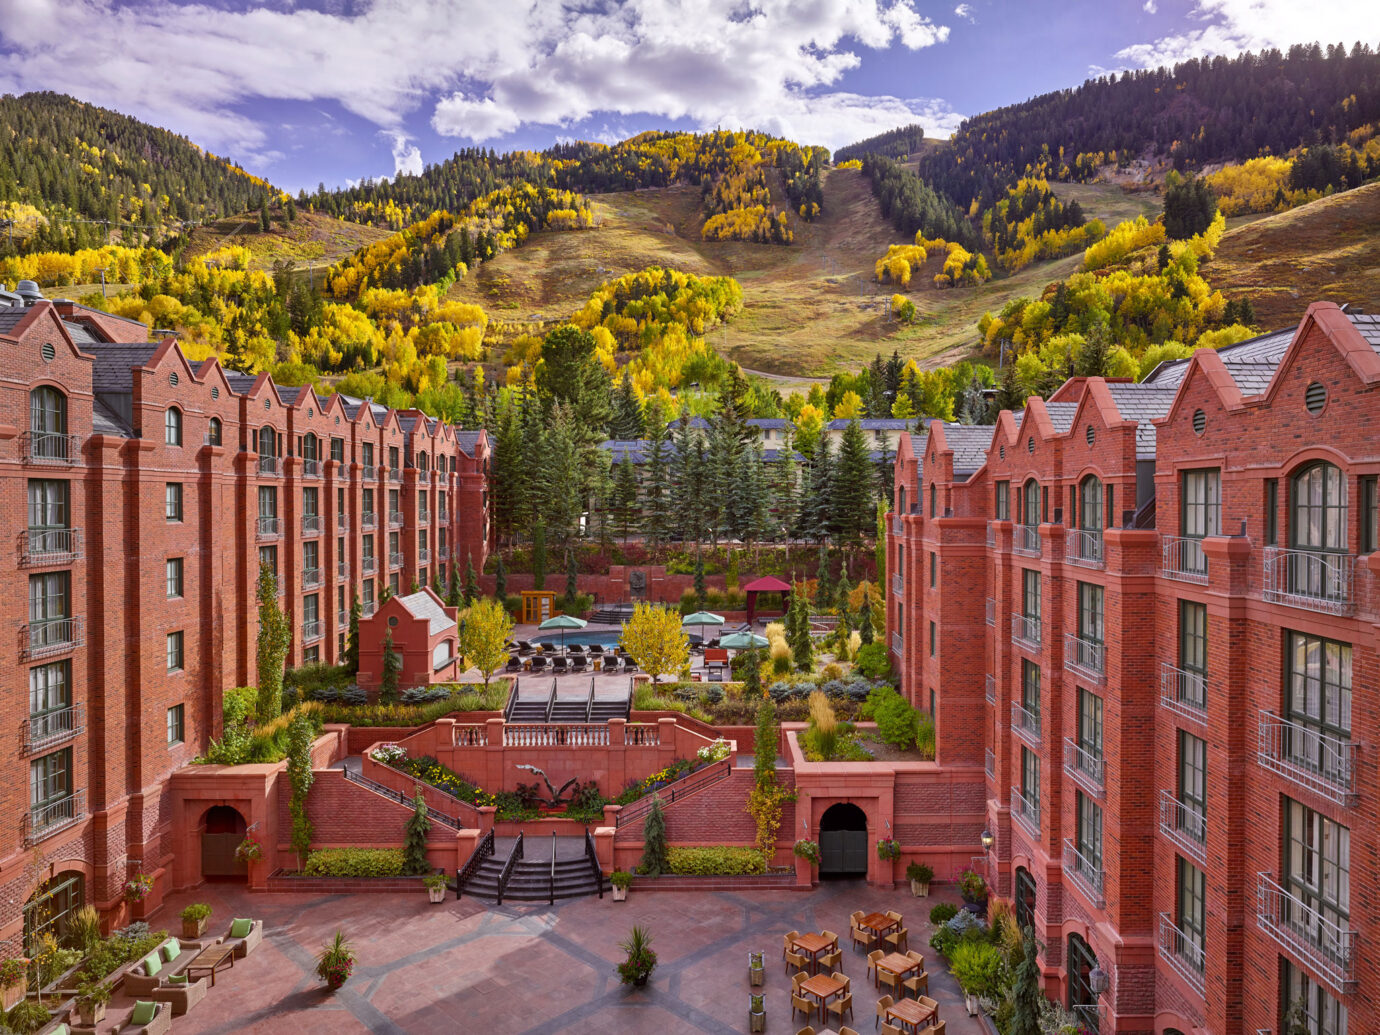 exterior of The St. Regis Aspen Resort in autumn